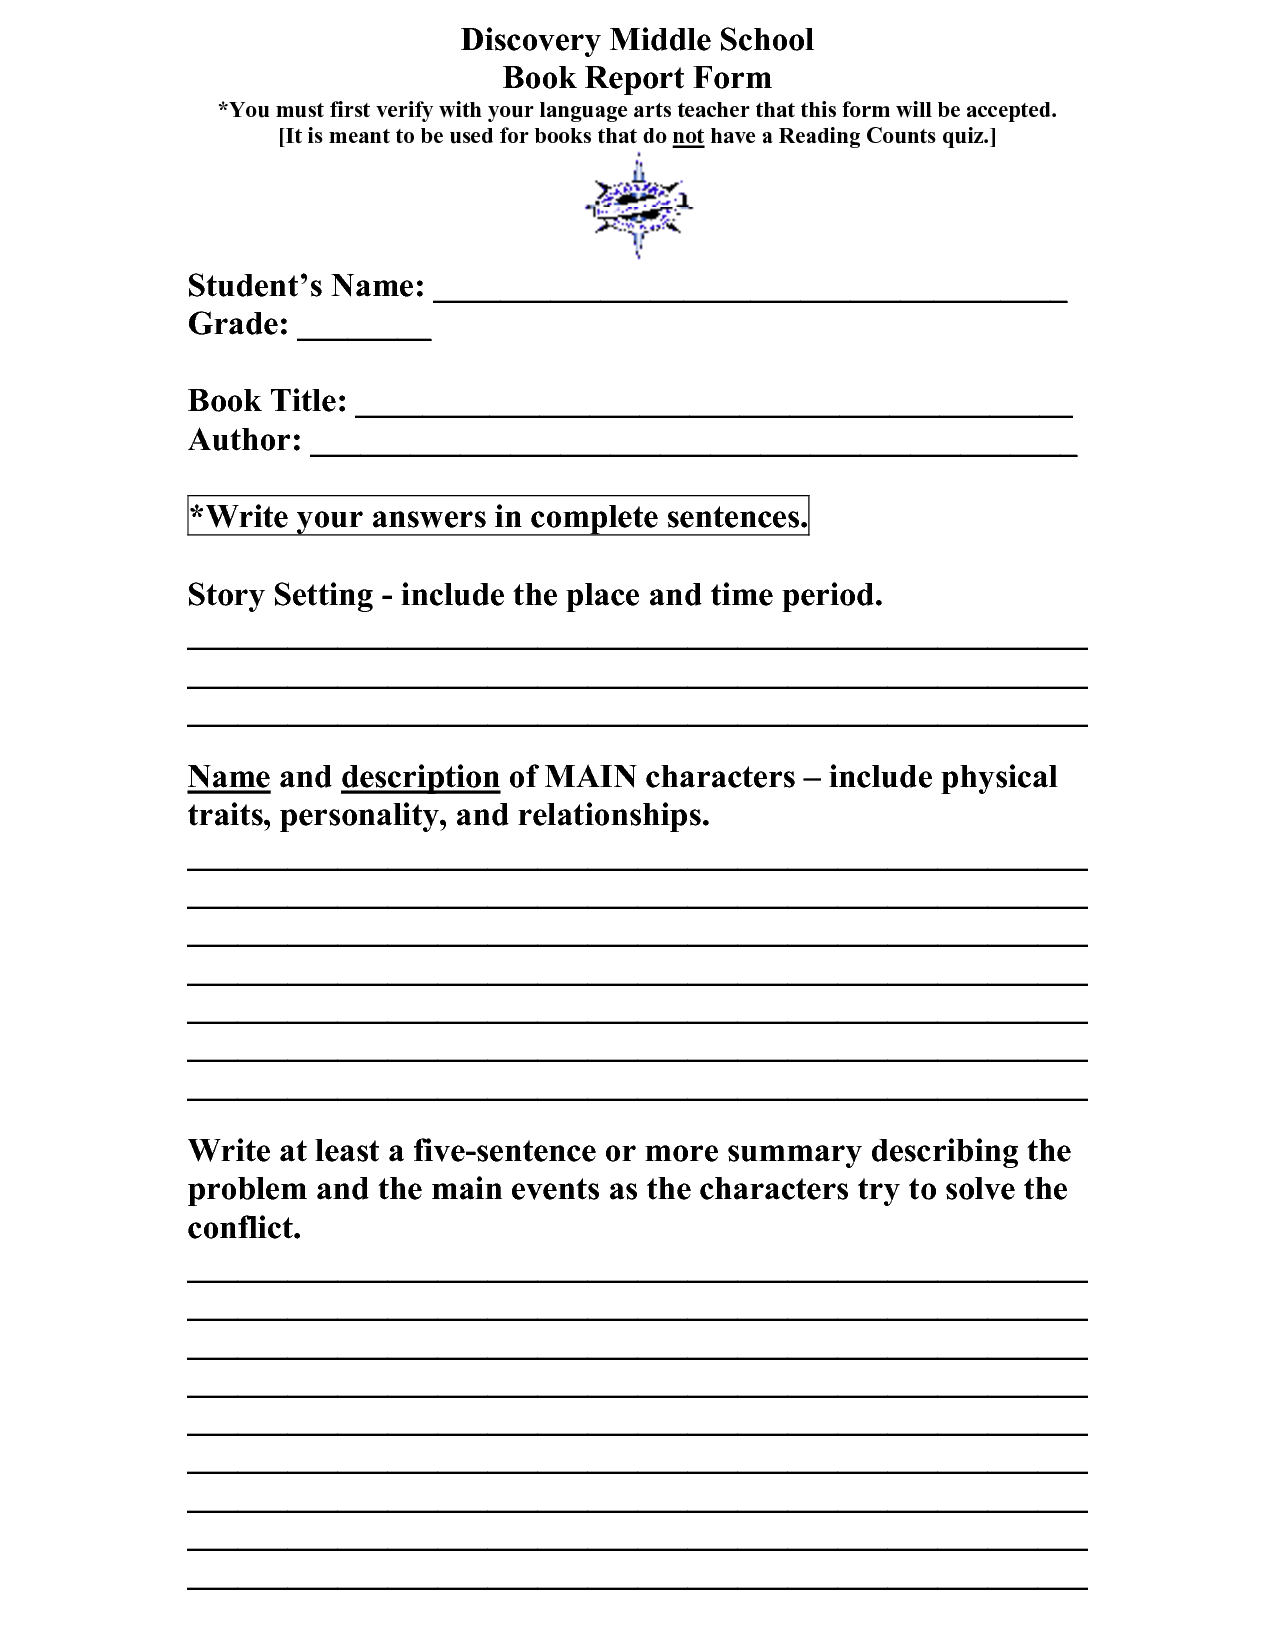 scope of work template | Teaching & Learning | Pinterest | Book ...